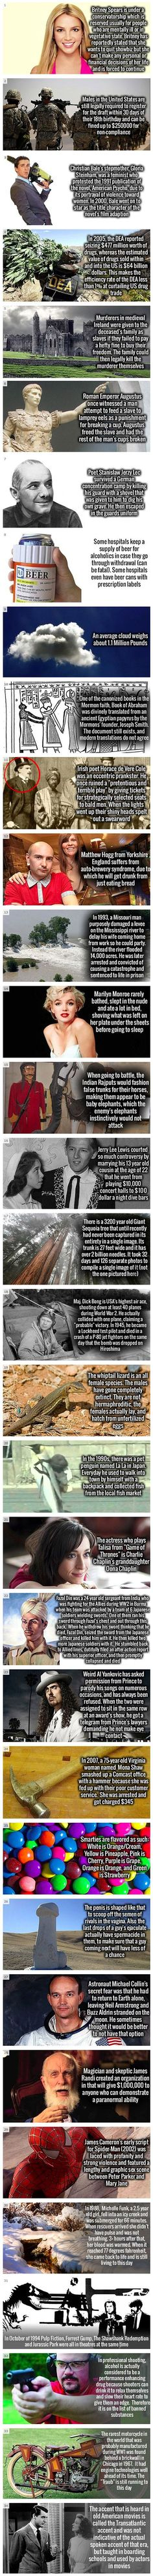 It is that time again, time for another round of interesting facts.: